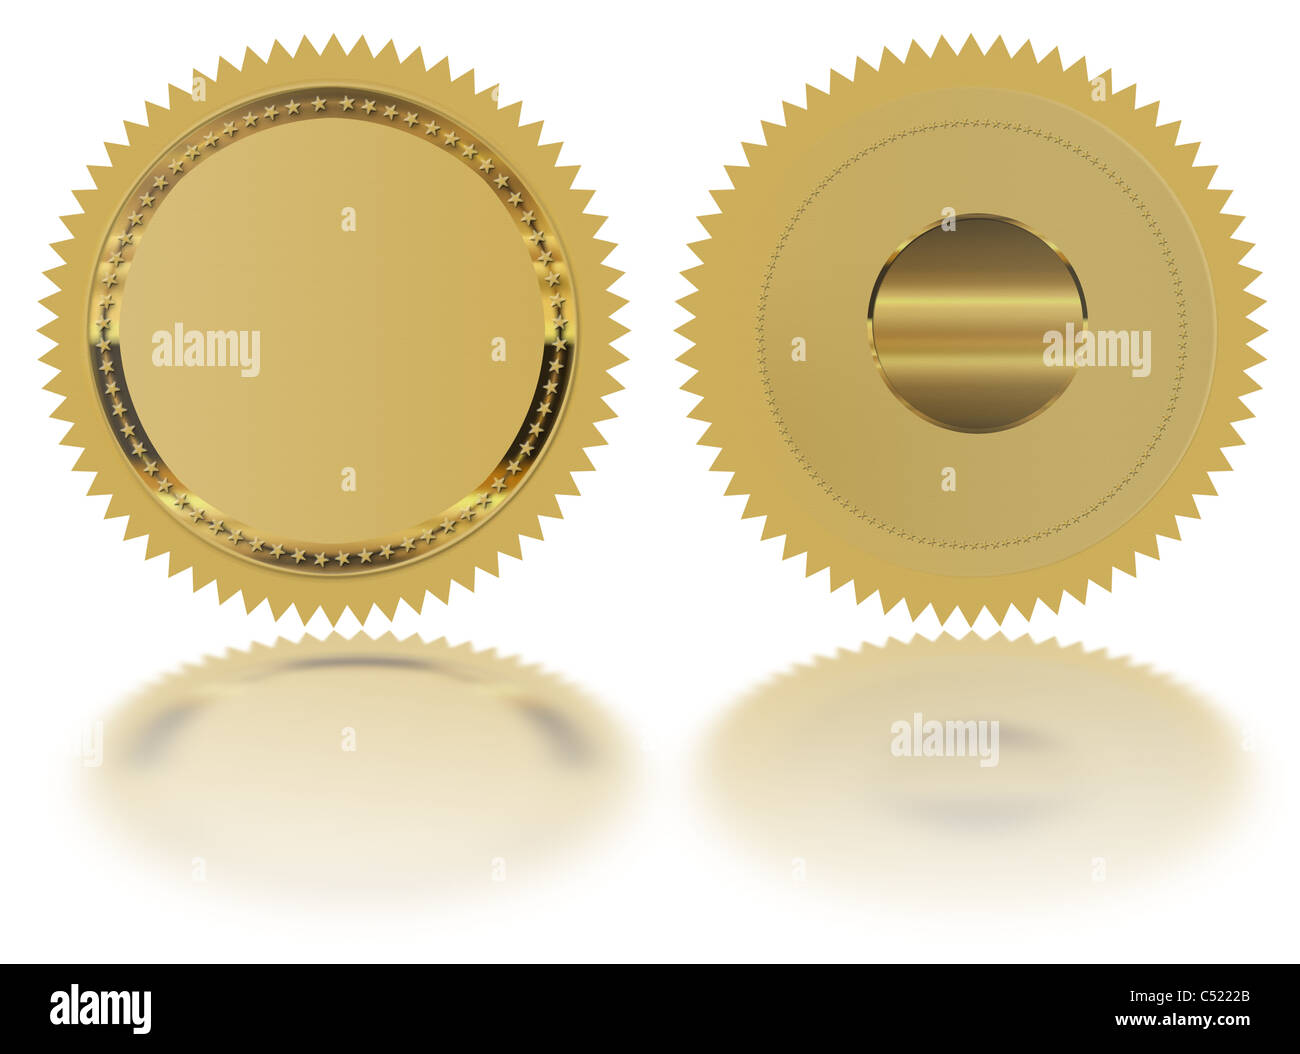 Gold seal /Stamp /Medal blank Stock Photo: 37539555 - Alamy